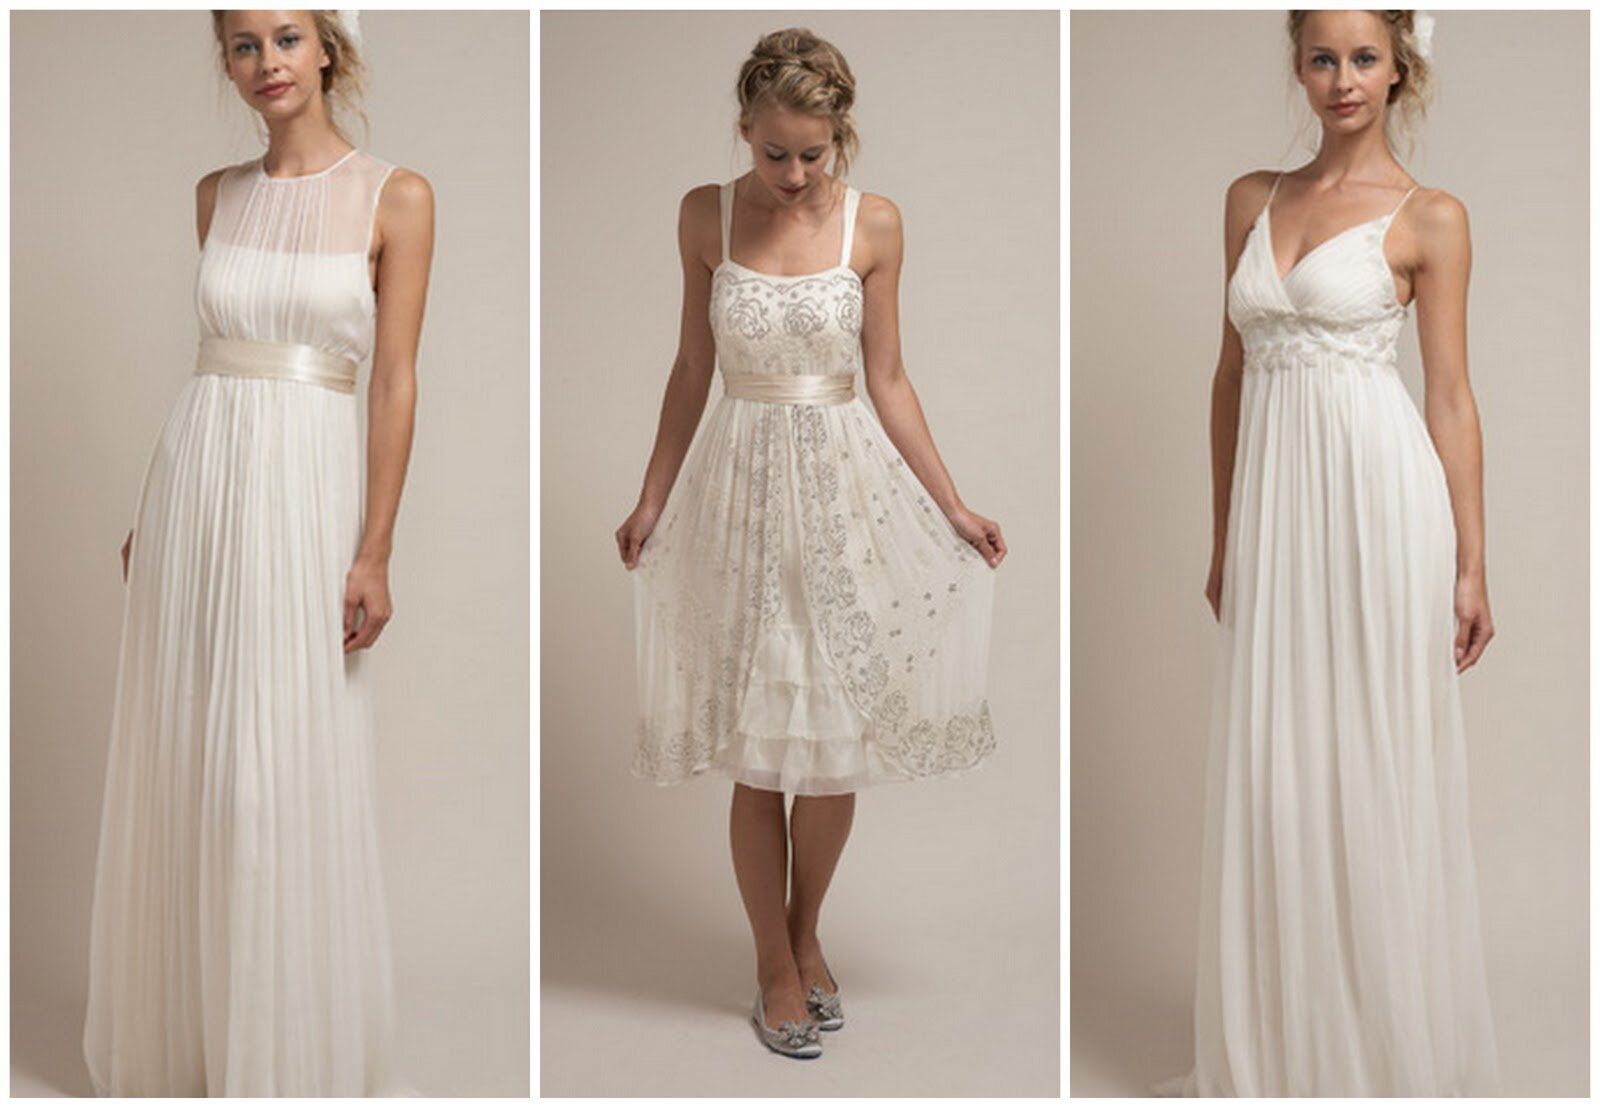 Summer wedding dresses Photo - 2